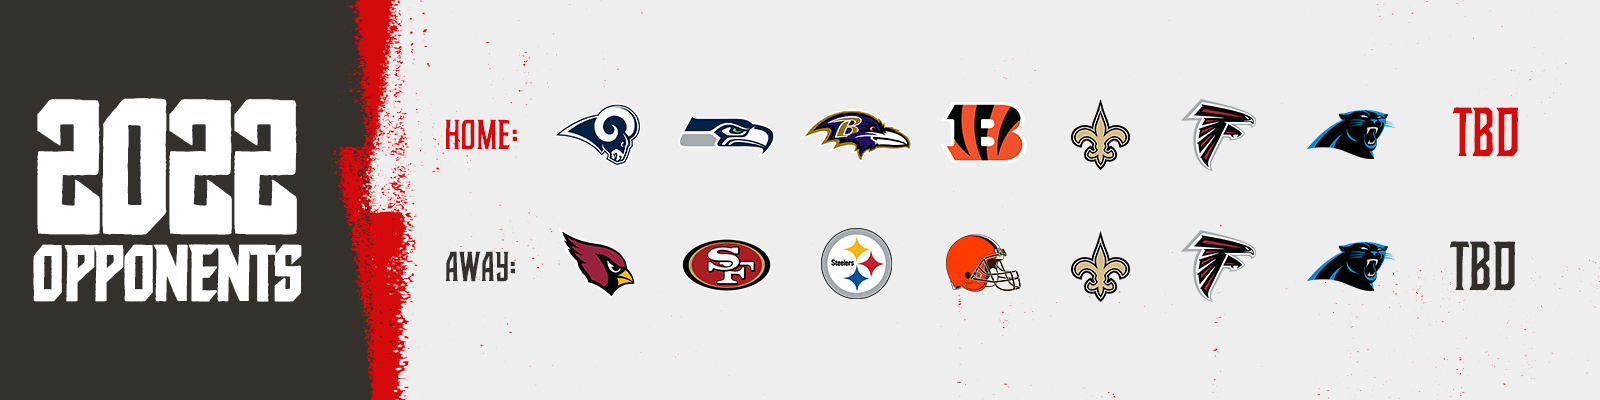 2022 Opponents - home - rams, seahawks, ravens, bengals, saints, falcons, panthers, tbd away - cardinals, 49ers, steelers, browns, saints, falcons, panthers, tbd